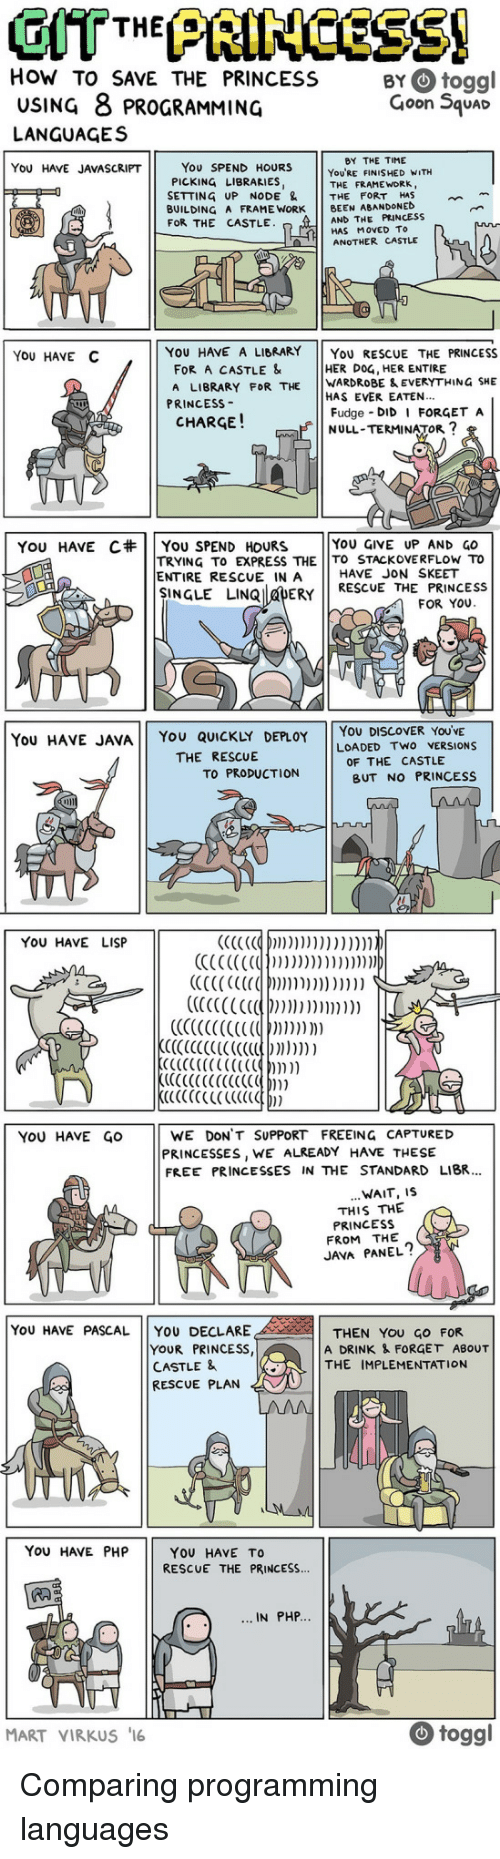 skeet: How TO SAVE THE PRINCESS BYtoggl  USING 8 PROGRAMMING  Goon 5quac  LANGUAGES  BY THE TIME  YoU'RE FINISHED WITH  THE FRAME WORk,  You SPEND HOURS  PICKING LIBRARIES,  SETTING UP NODE THE FORT HAS  BUILDING A FRAME WORK BEEN ABANDONED  FOR THE CASTLE  YOU HAVE JAVASCRIPT  AND THE PRINCESS  HAS MoVED To  ANOTHER CASTLE  YOU HAVE C  YOU HAVE A LIBRARY YoU RESCUE THE PRINCESS  FOR A CASTLE &  A LIBRARY FOR THE WARDROBE & EVERYTHING SHE  HER DOG, HER ENTIRE  HAS EVER EATEN..  Fudge DID FORGET A  NULL-TERMINATOR  PRINCESS-  CHARGE!  YOU GIVE UP AND GO  TRYING TO EXPRESS THE TO STACKOVERFLOw To  YOU HAVE C#| | You SPEND HOURS  ENTIRE RESCUE IN A  HAVE JON SKEET  NGLE LINQ DERY RESCUE THE PRINCESS  FOR YOU  You  HAVE JAVAYou QUICKLY DEPLOY  |You DiSCOVER YOu'vE  LOADED TWO VERSIONS  THE RESCUE  OF THE CASTLE  TO PRODUCTION  BUT NO PRINCESS  YOU HAVE LISP  CCCCCC(OCIm  YoU HAVE GOWE DON'T SUPPORT FREEING CAPTURED  PRINCESSES, WE ALREADY HAVE THESIE  FREE PRINCESSES IN THE STANDARD LIBR.  WAIT, IS  THIS THE  PRINCESS  FROM THE  JAVA PANEL?  YoU HAVE PASCAL YOU DECLARE  YOUR PRINCESS  CASTLE &  RESCUE PLAN  THEN YOU GO FOR  A DRINK & FORGET ABOUT  THE IMPLEMENTATION  You HAVE PHP  YOU HAVE TO  RESCUE THE PRINCESS...  IN PHP  MART VIRKus  togg Comparing programming languages